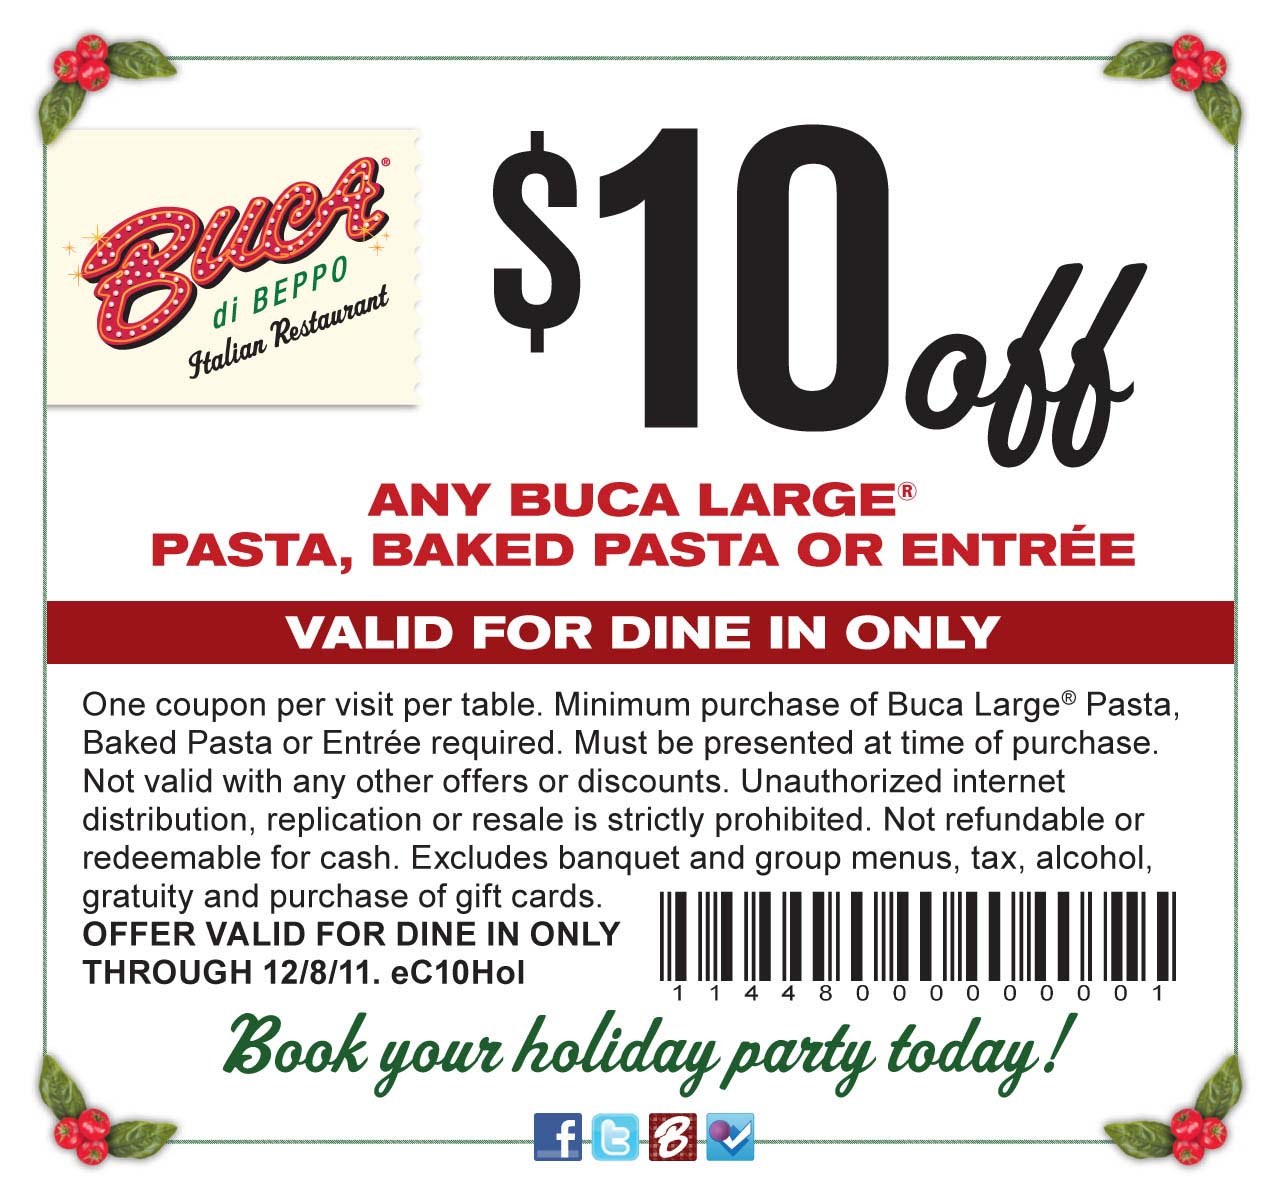 image about Buca Di Beppo Coupons Printable referred to as Buca di beppo 4 for 40 coupon - Vet healthcare facility el paso tx